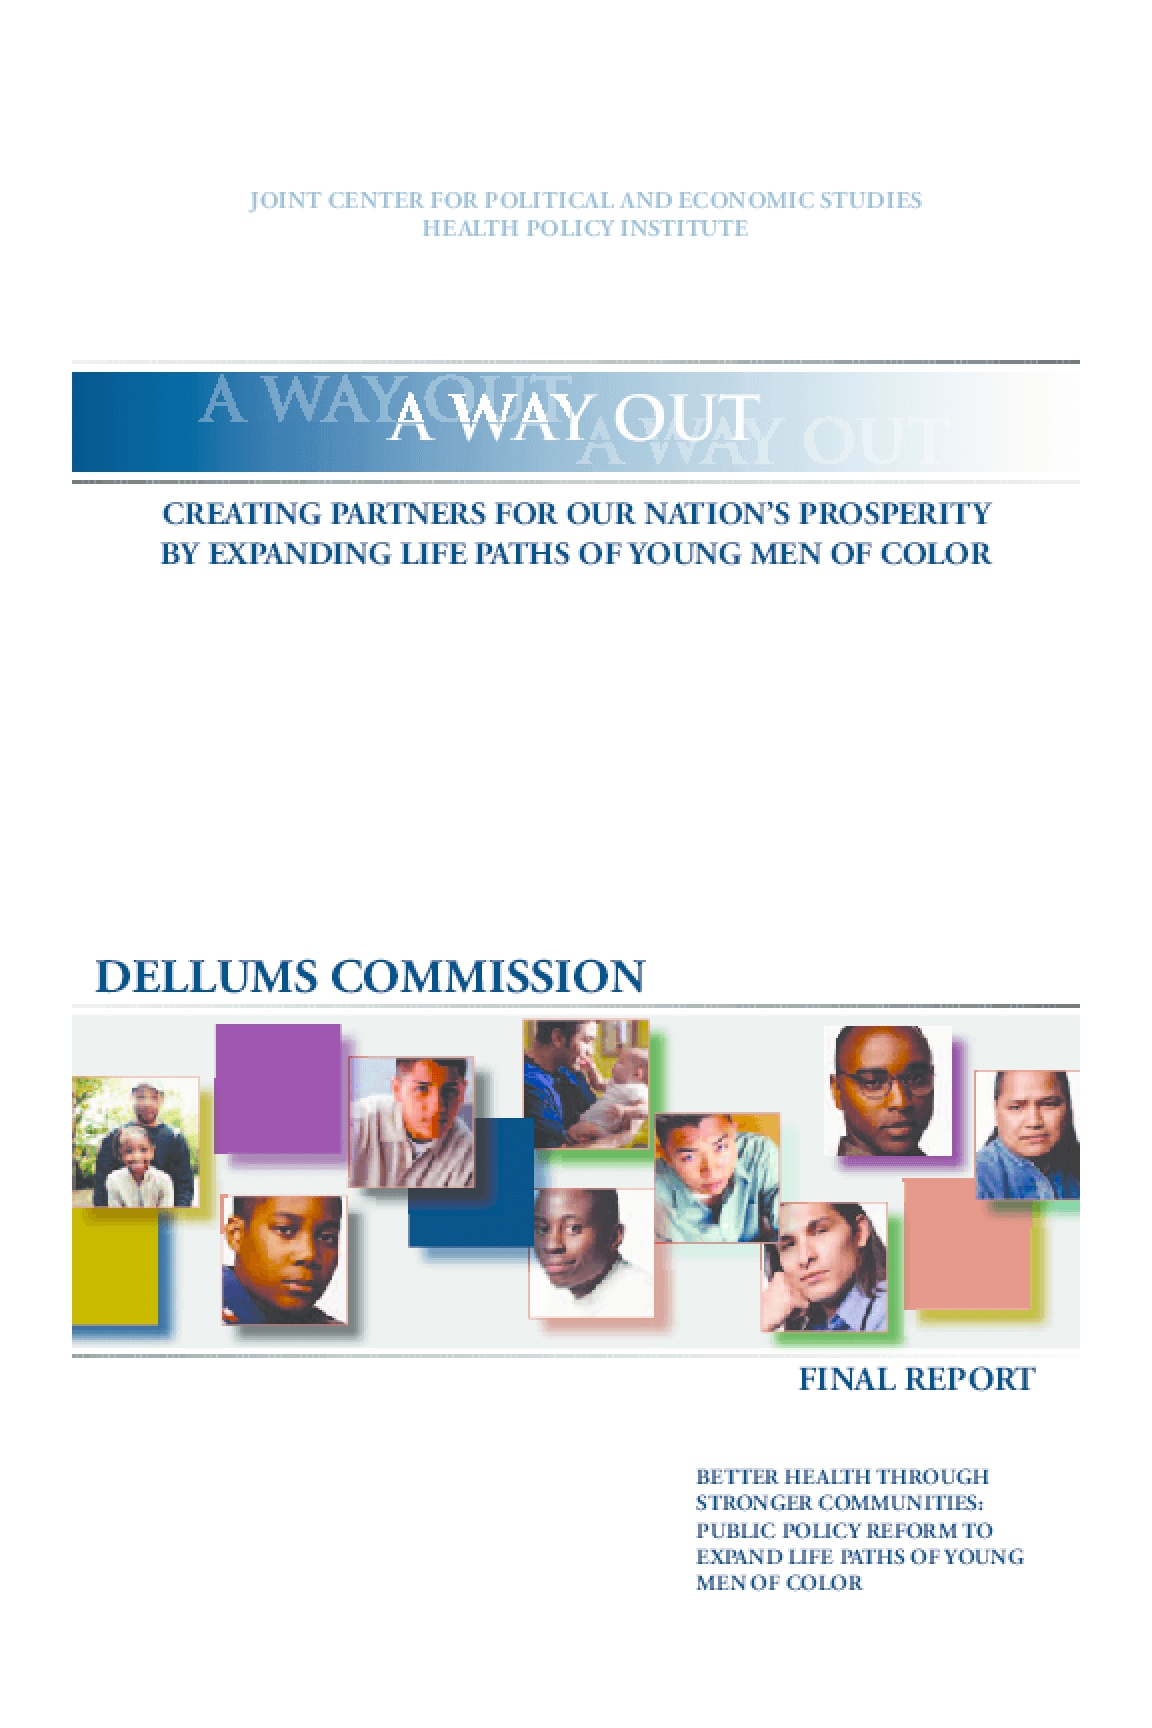 A Way Out: Creating Partners for Our Nation's Prosperity by Expanding Life Paths of Young Men of Color